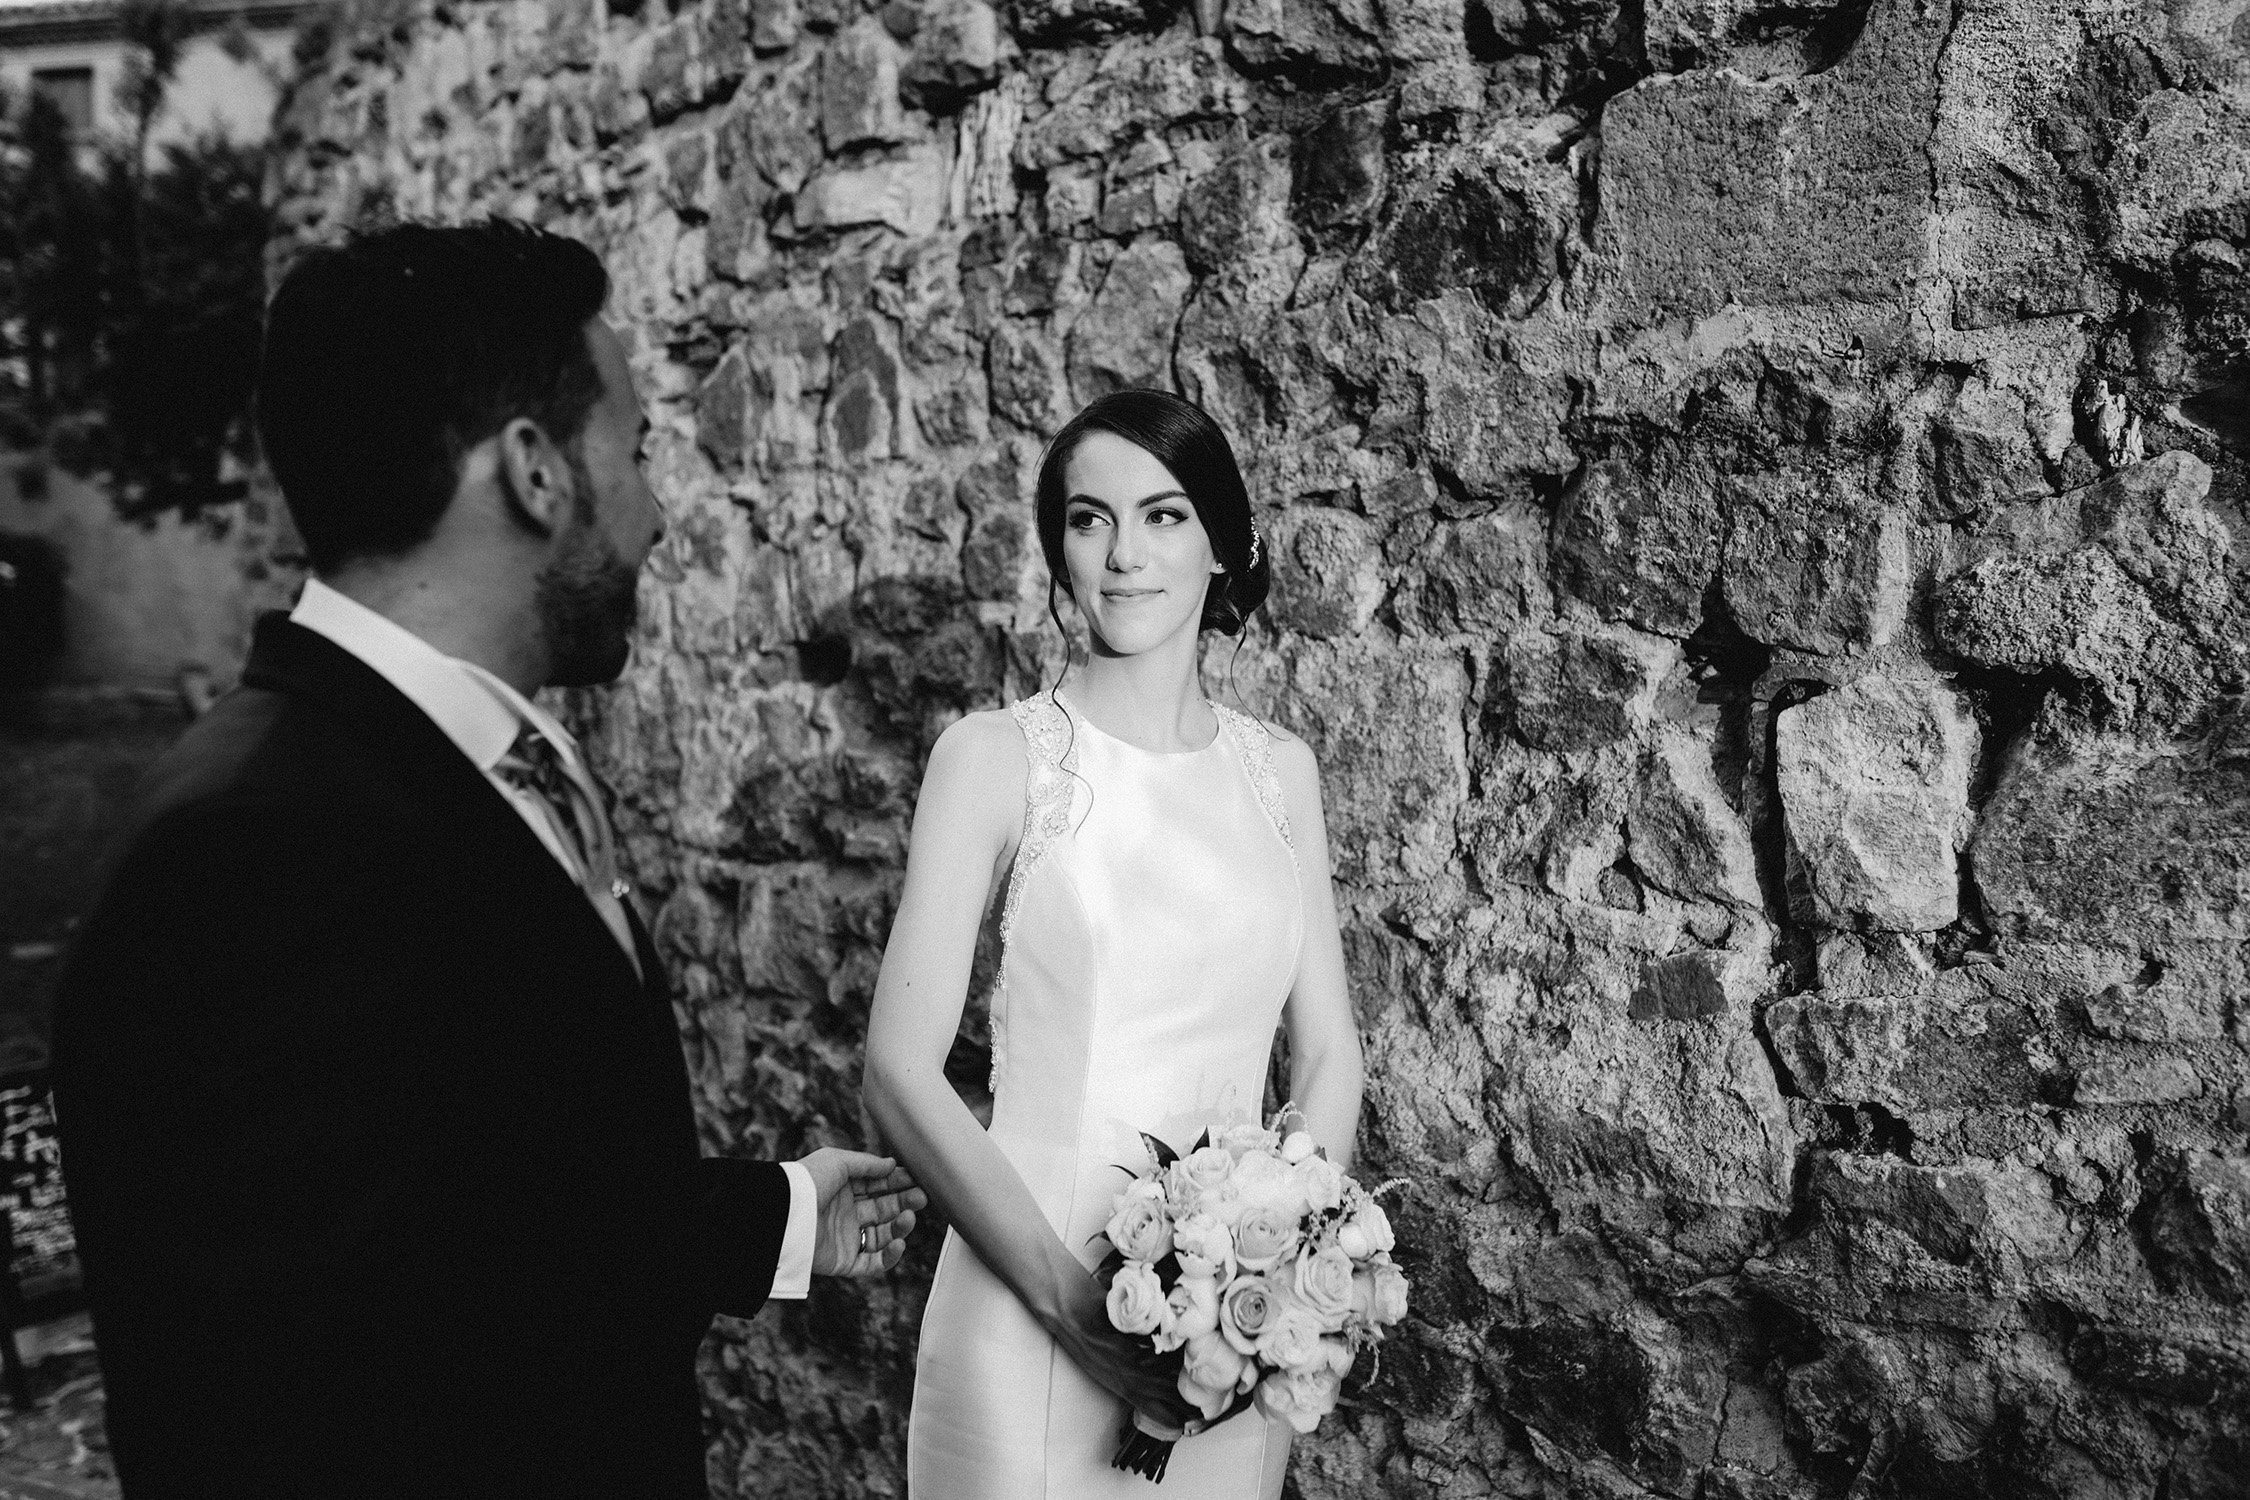 Matrimonio Arquà Petrarca. Fotografo Matrimonio Padova. Luisa Basso Wedding Photographer. Italian Wedding photographer